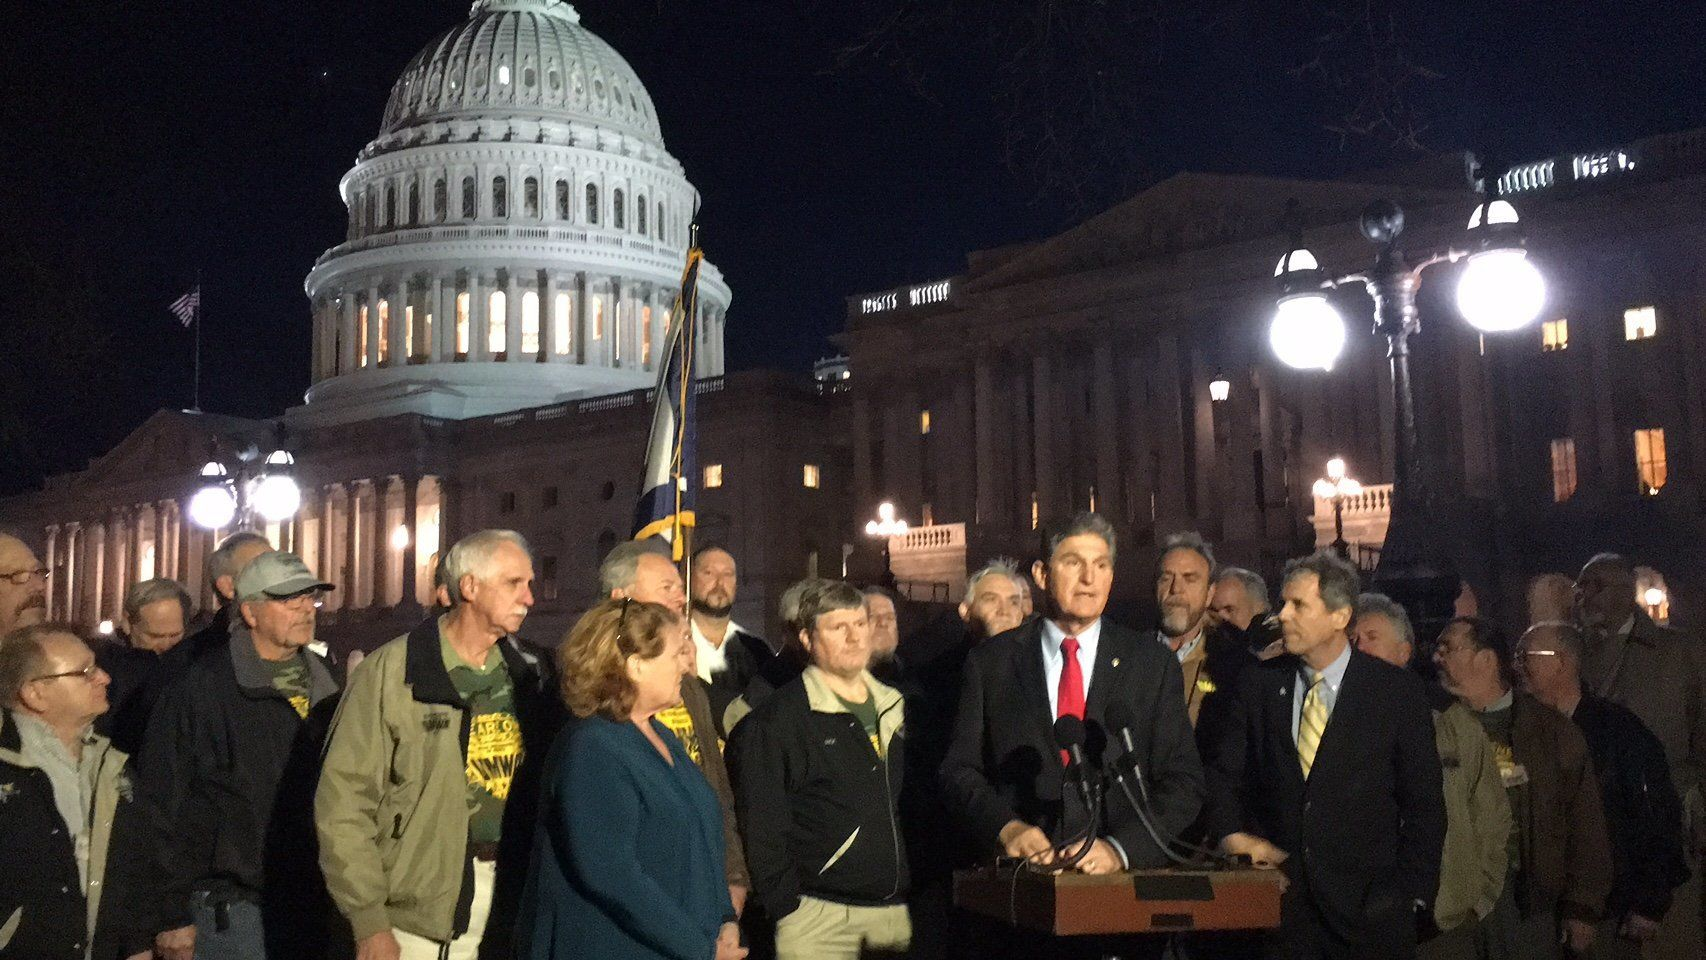 Sen. Joe Manchin (D-W.Va.) joined by United Mine Workers representatives and Sens. Heidi Heitkamp (D-N.D.) and Sherrod Brown